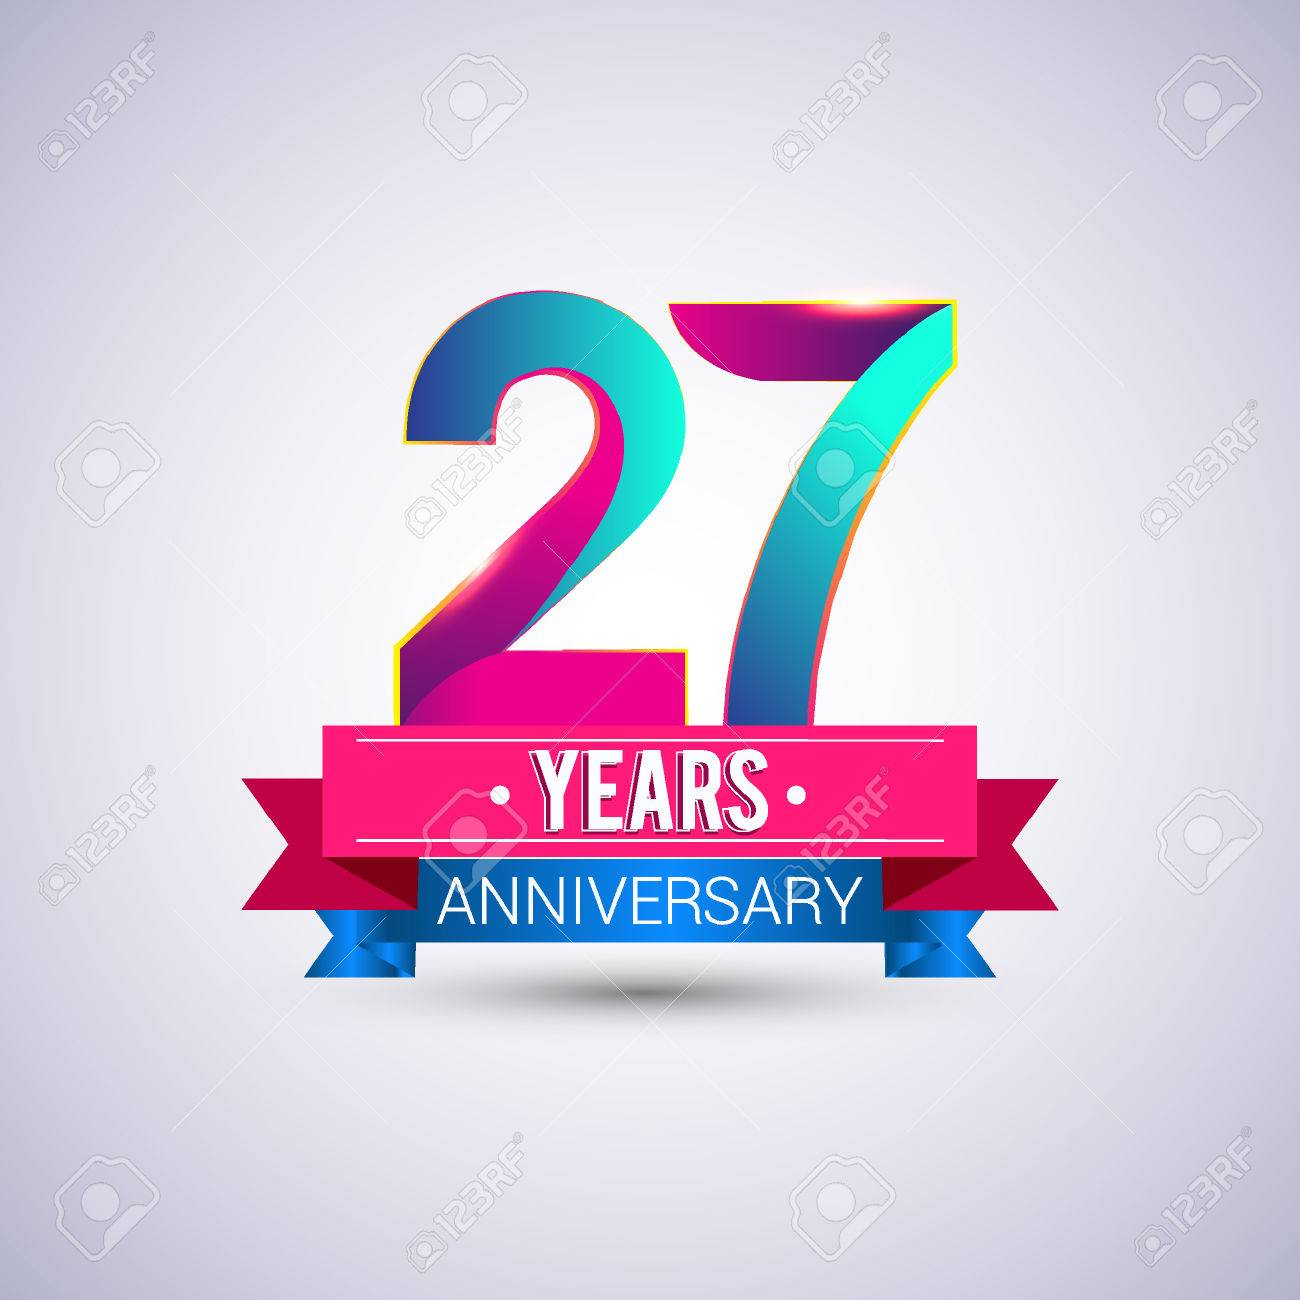 27 years anniversary logo blue and red colored vector design 27 years anniversary logo blue and red colored vector design stock vector 74493397 biocorpaavc Images